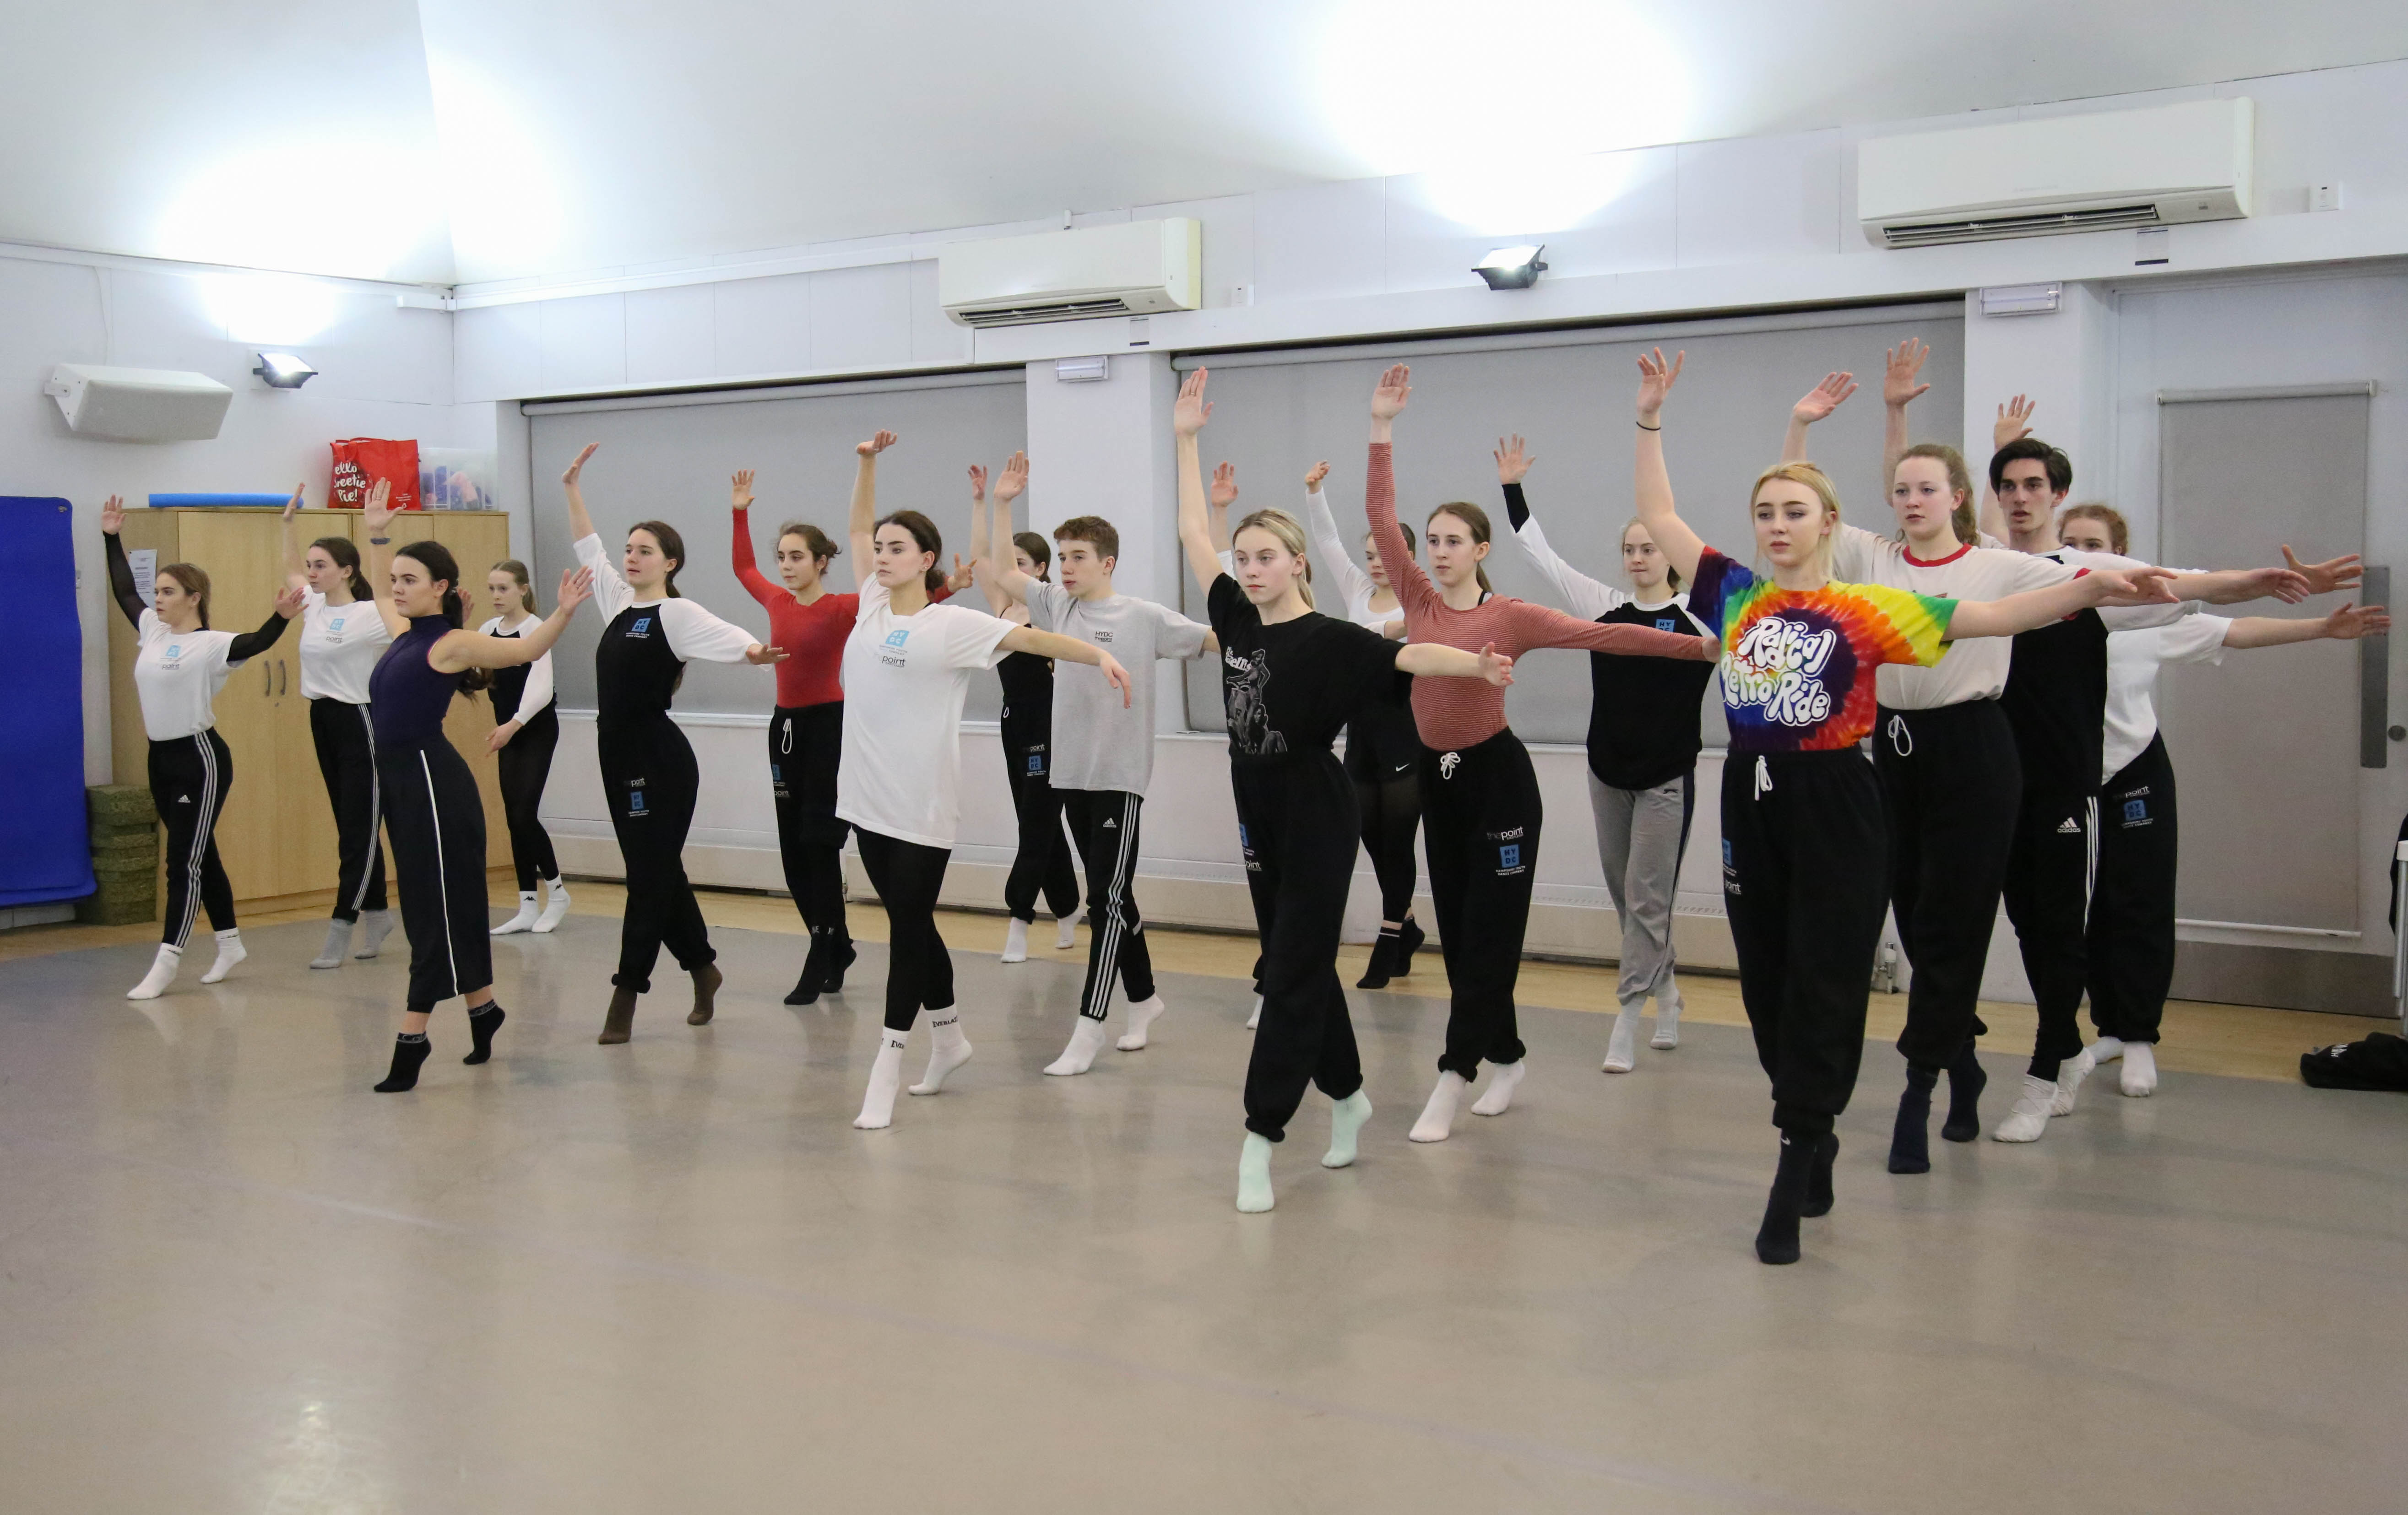 Group of young dancers of mixed genders in synchronisation during a class rehearsal in the dance studio